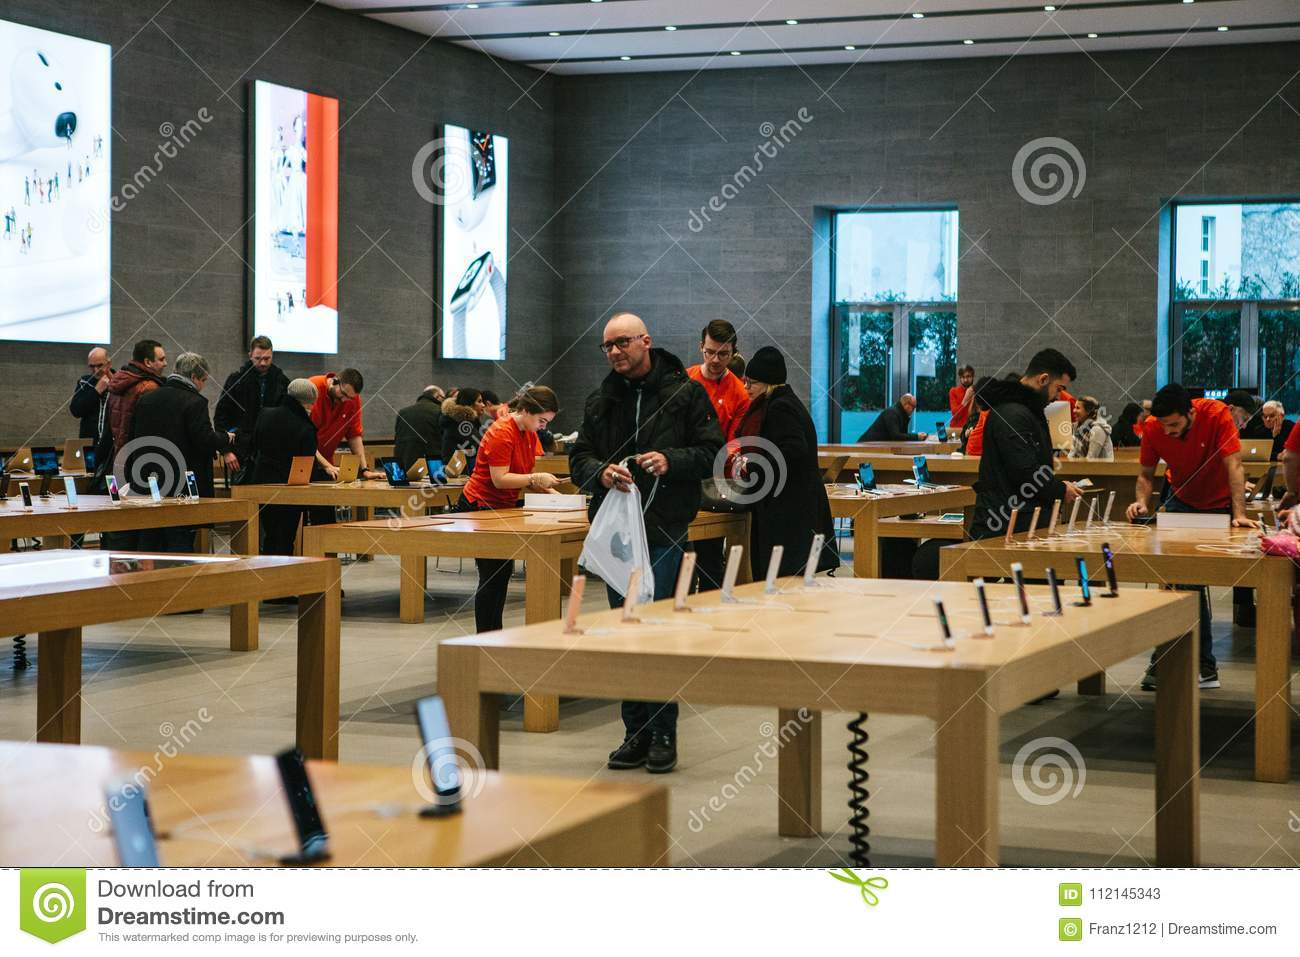 Berlin, December 12, 2017: presentation of the iPhone X and iPhone 8 plus and sales of new Apple products in the